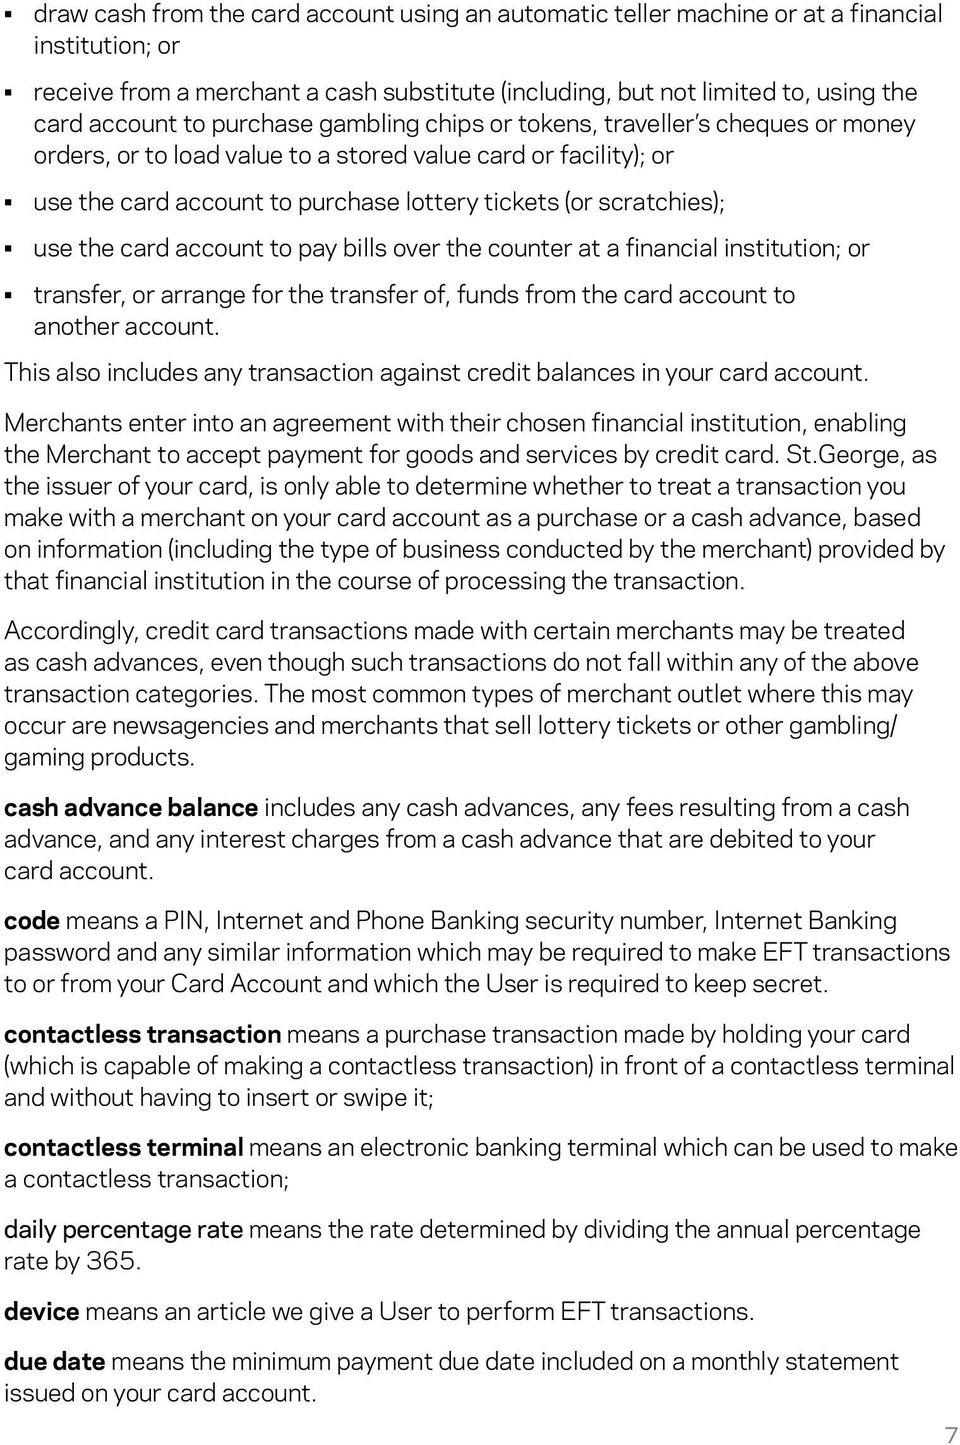 the card account to pay bills over the counter at a financial institution; or transfer, or arrange for the transfer of, funds from the card account to another account.